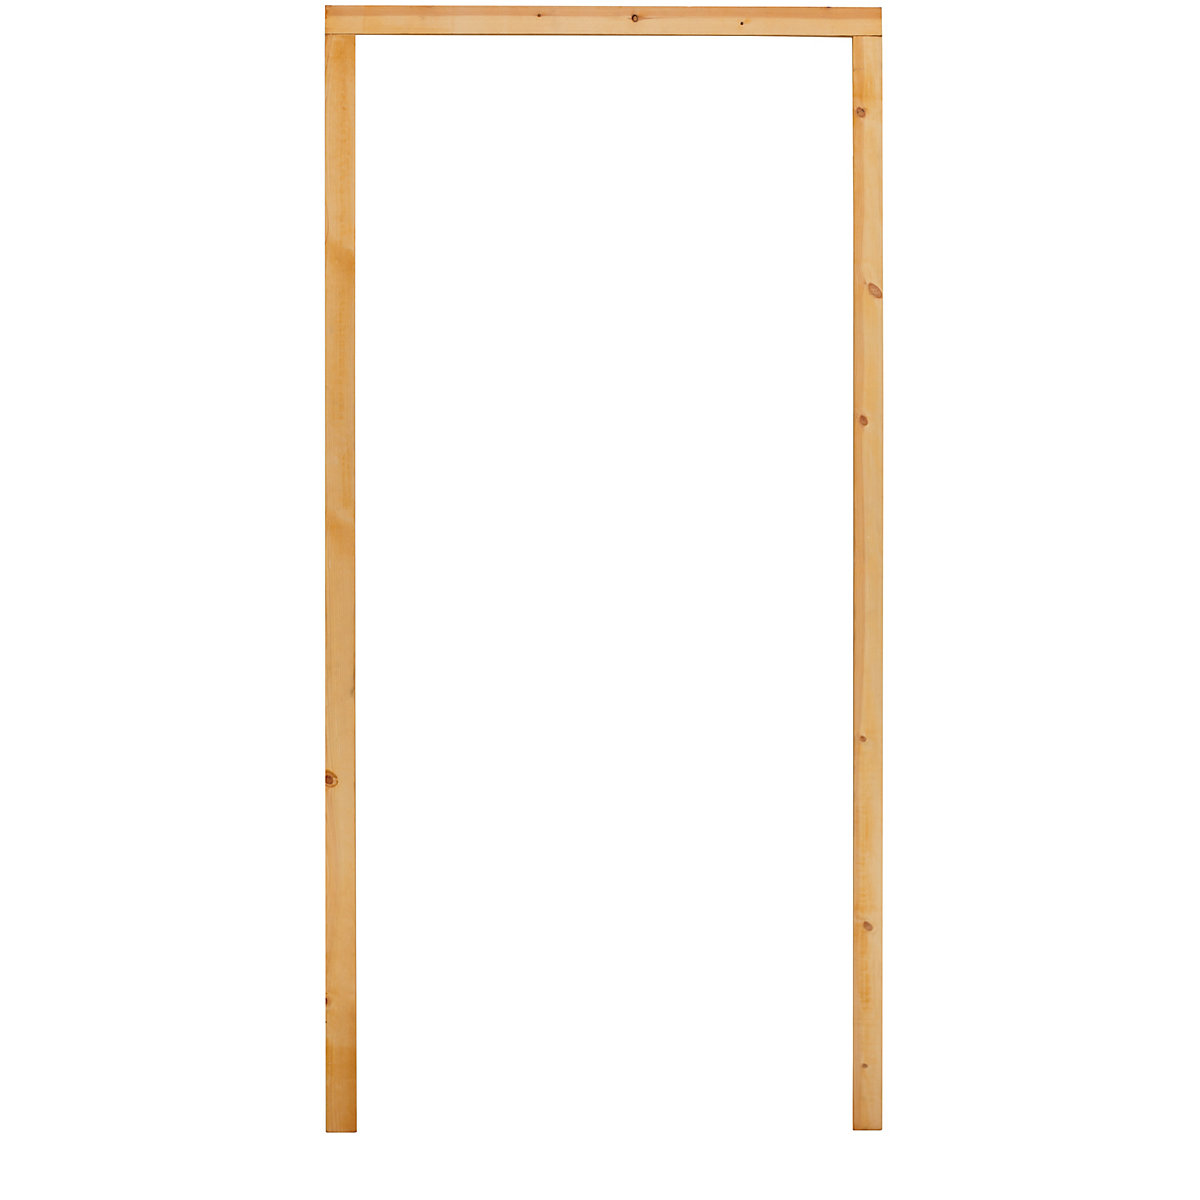 External fire resistant door frame to suit 2\'9x6\'6 door. No sill ...